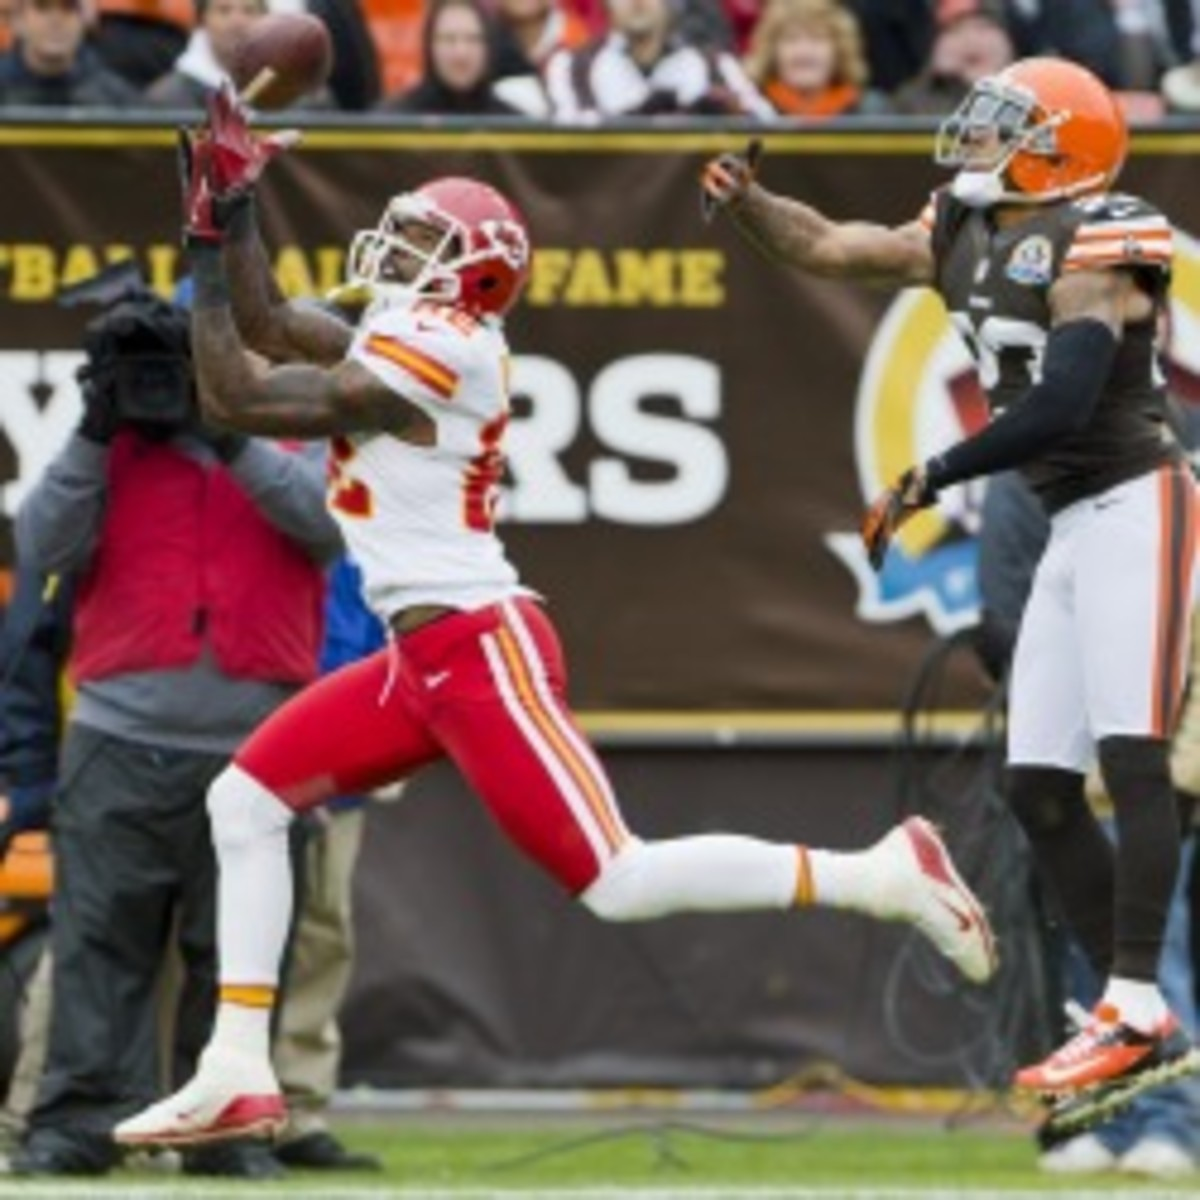 The Chiefs placed receiver Dwayne Bowe on IR with a rib injury. (Jason Miller/Getty Images)